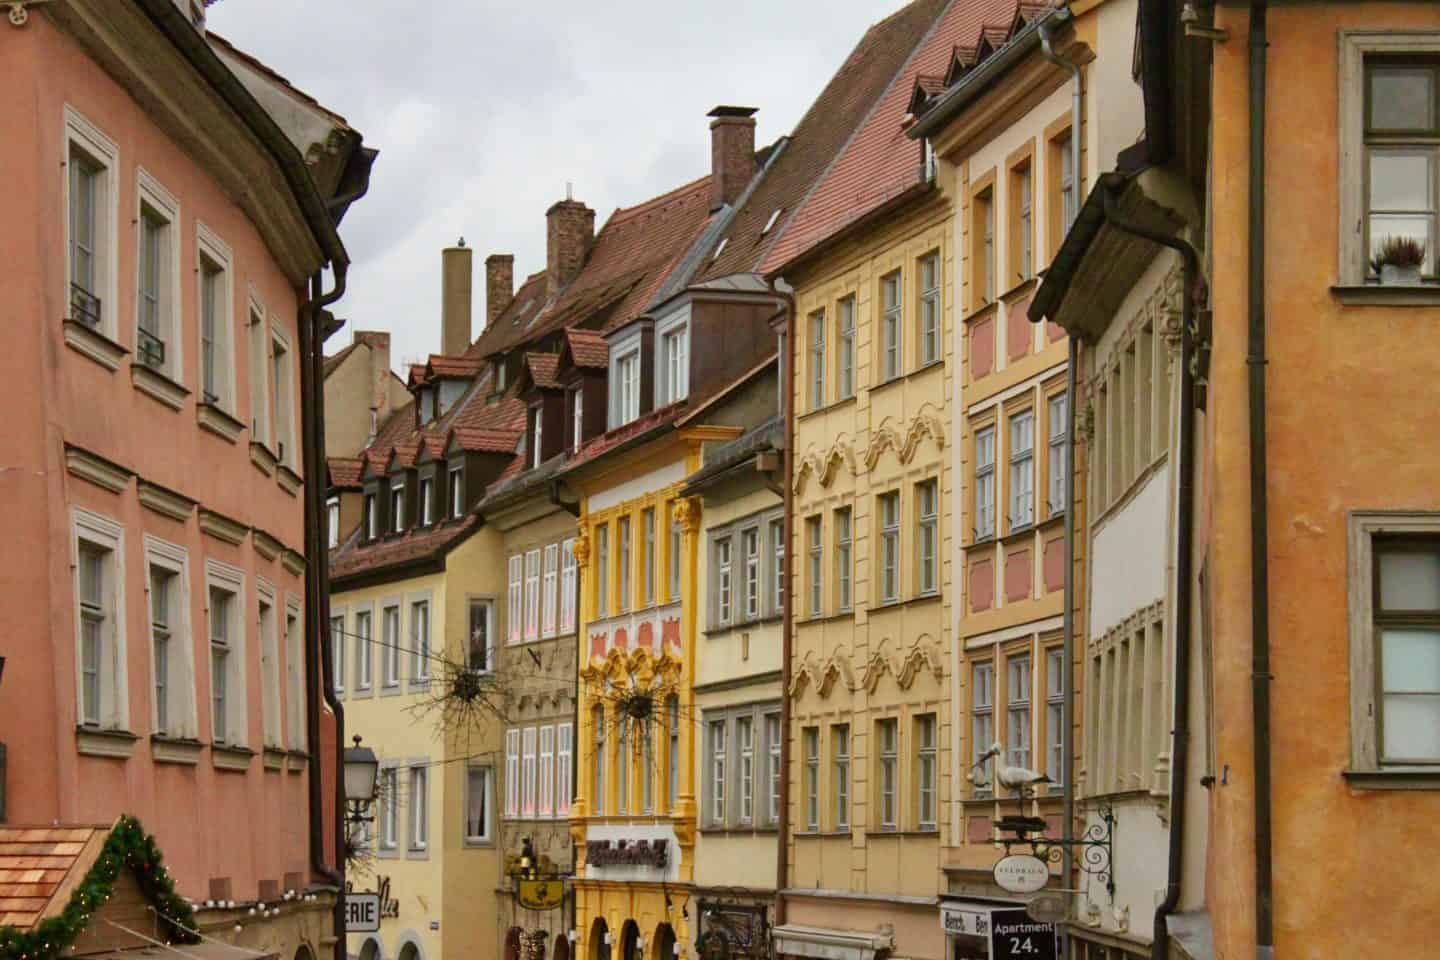 The UNESCO World Heritage town of Bamberg